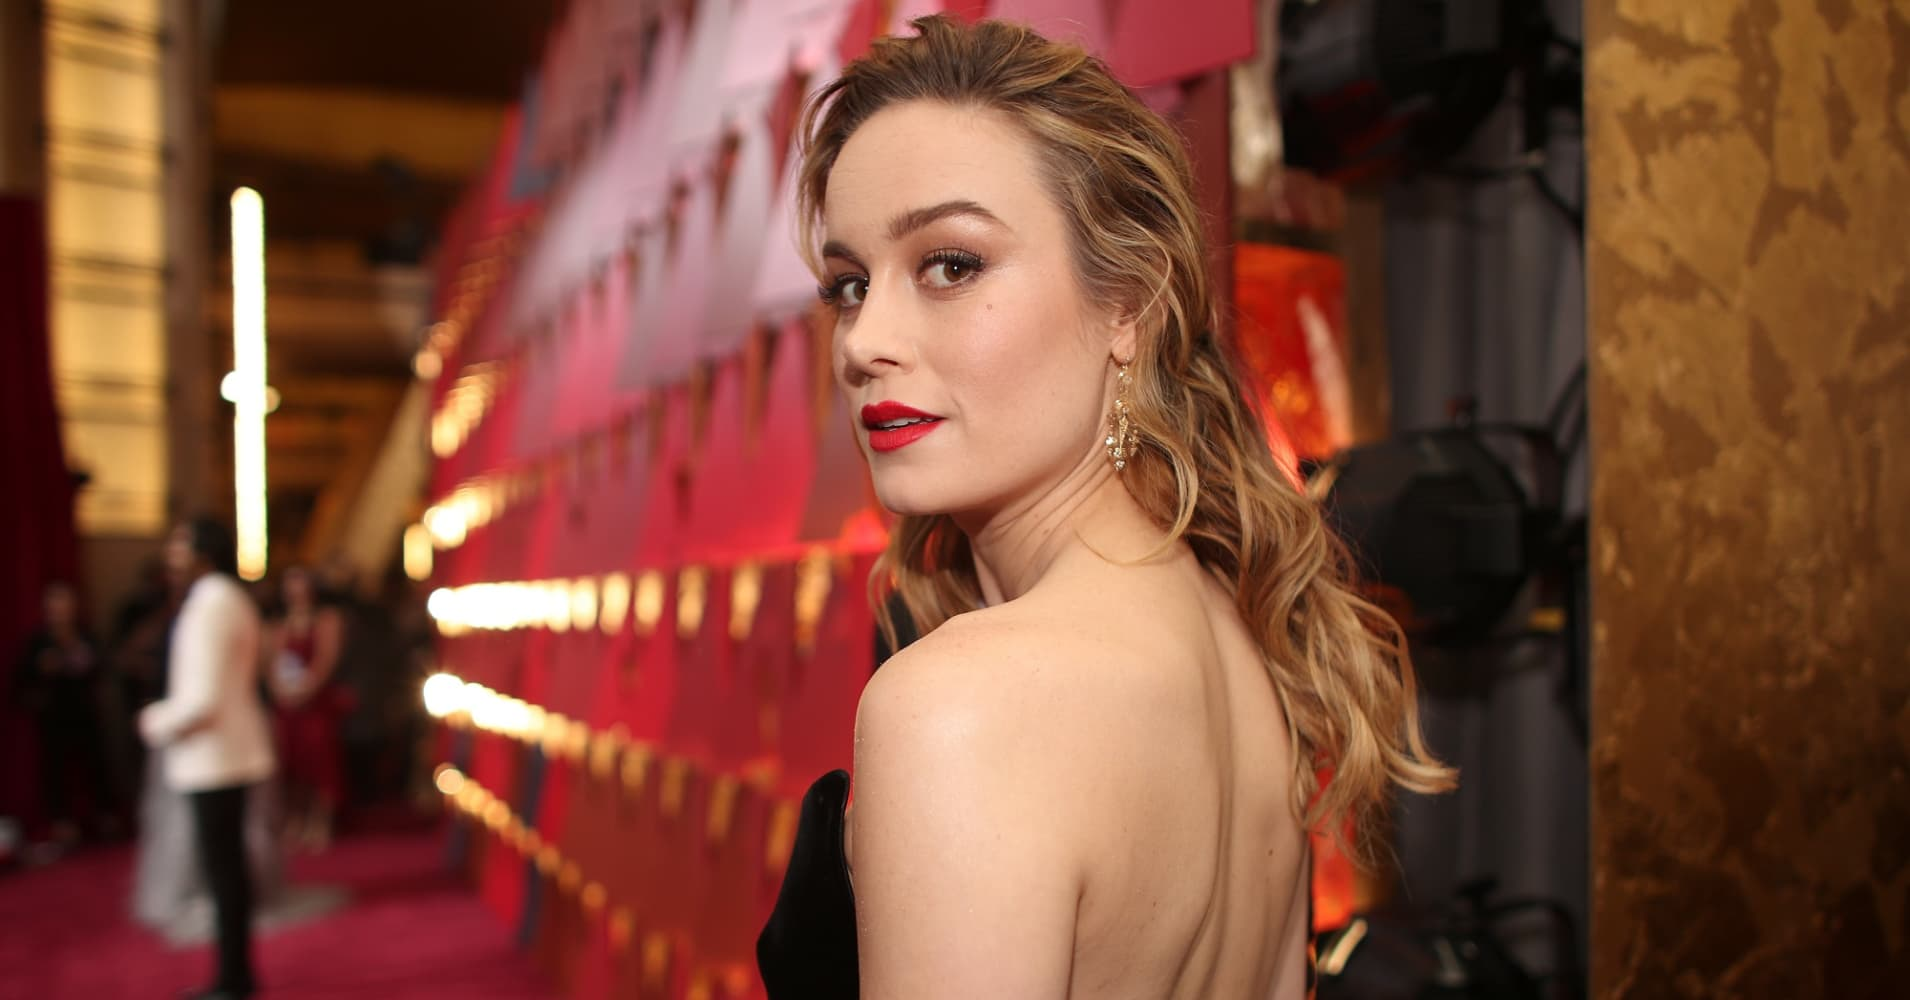 Actor Brie Larson attends the 89th Annual Academy Awards at Hollywood & Highland Center on February 26, 2017 in Hollywood, California.